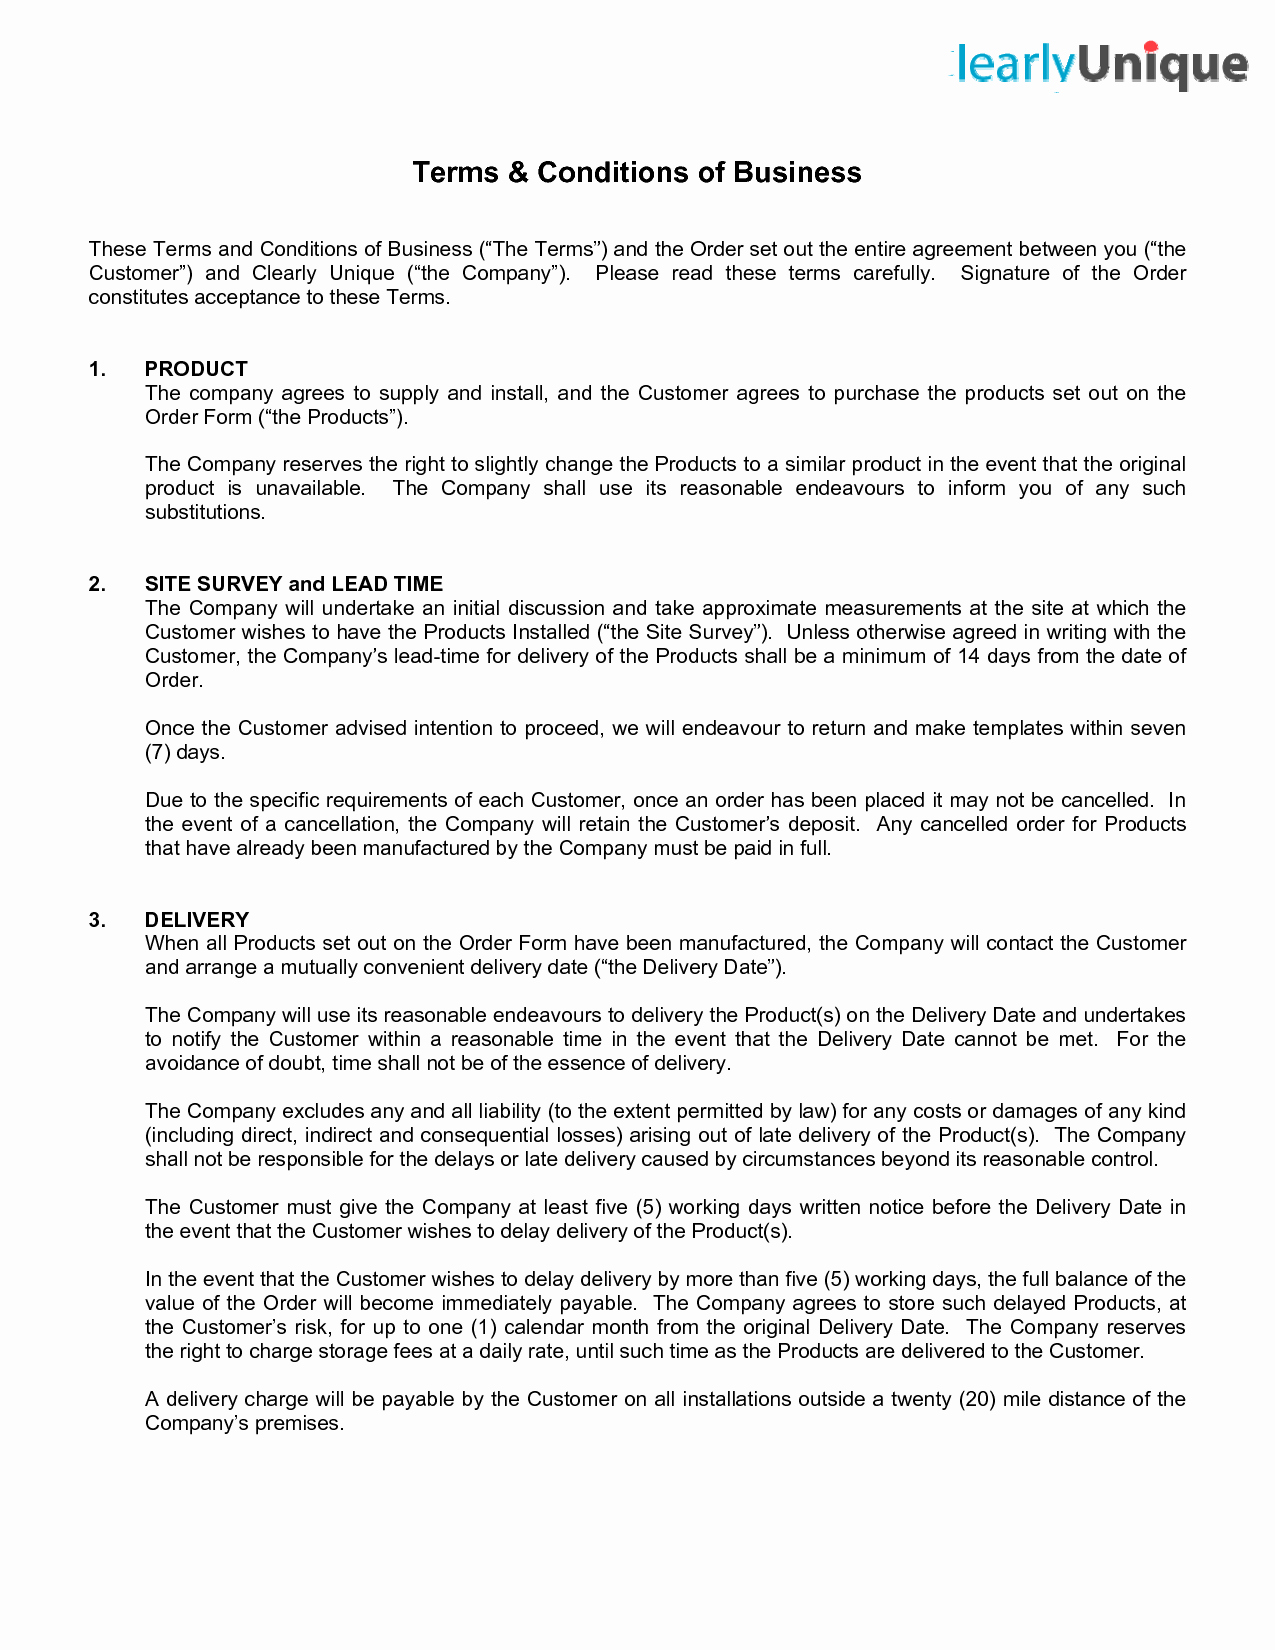 Terms Of Agreement Sample Awesome Terms and Conditions Template